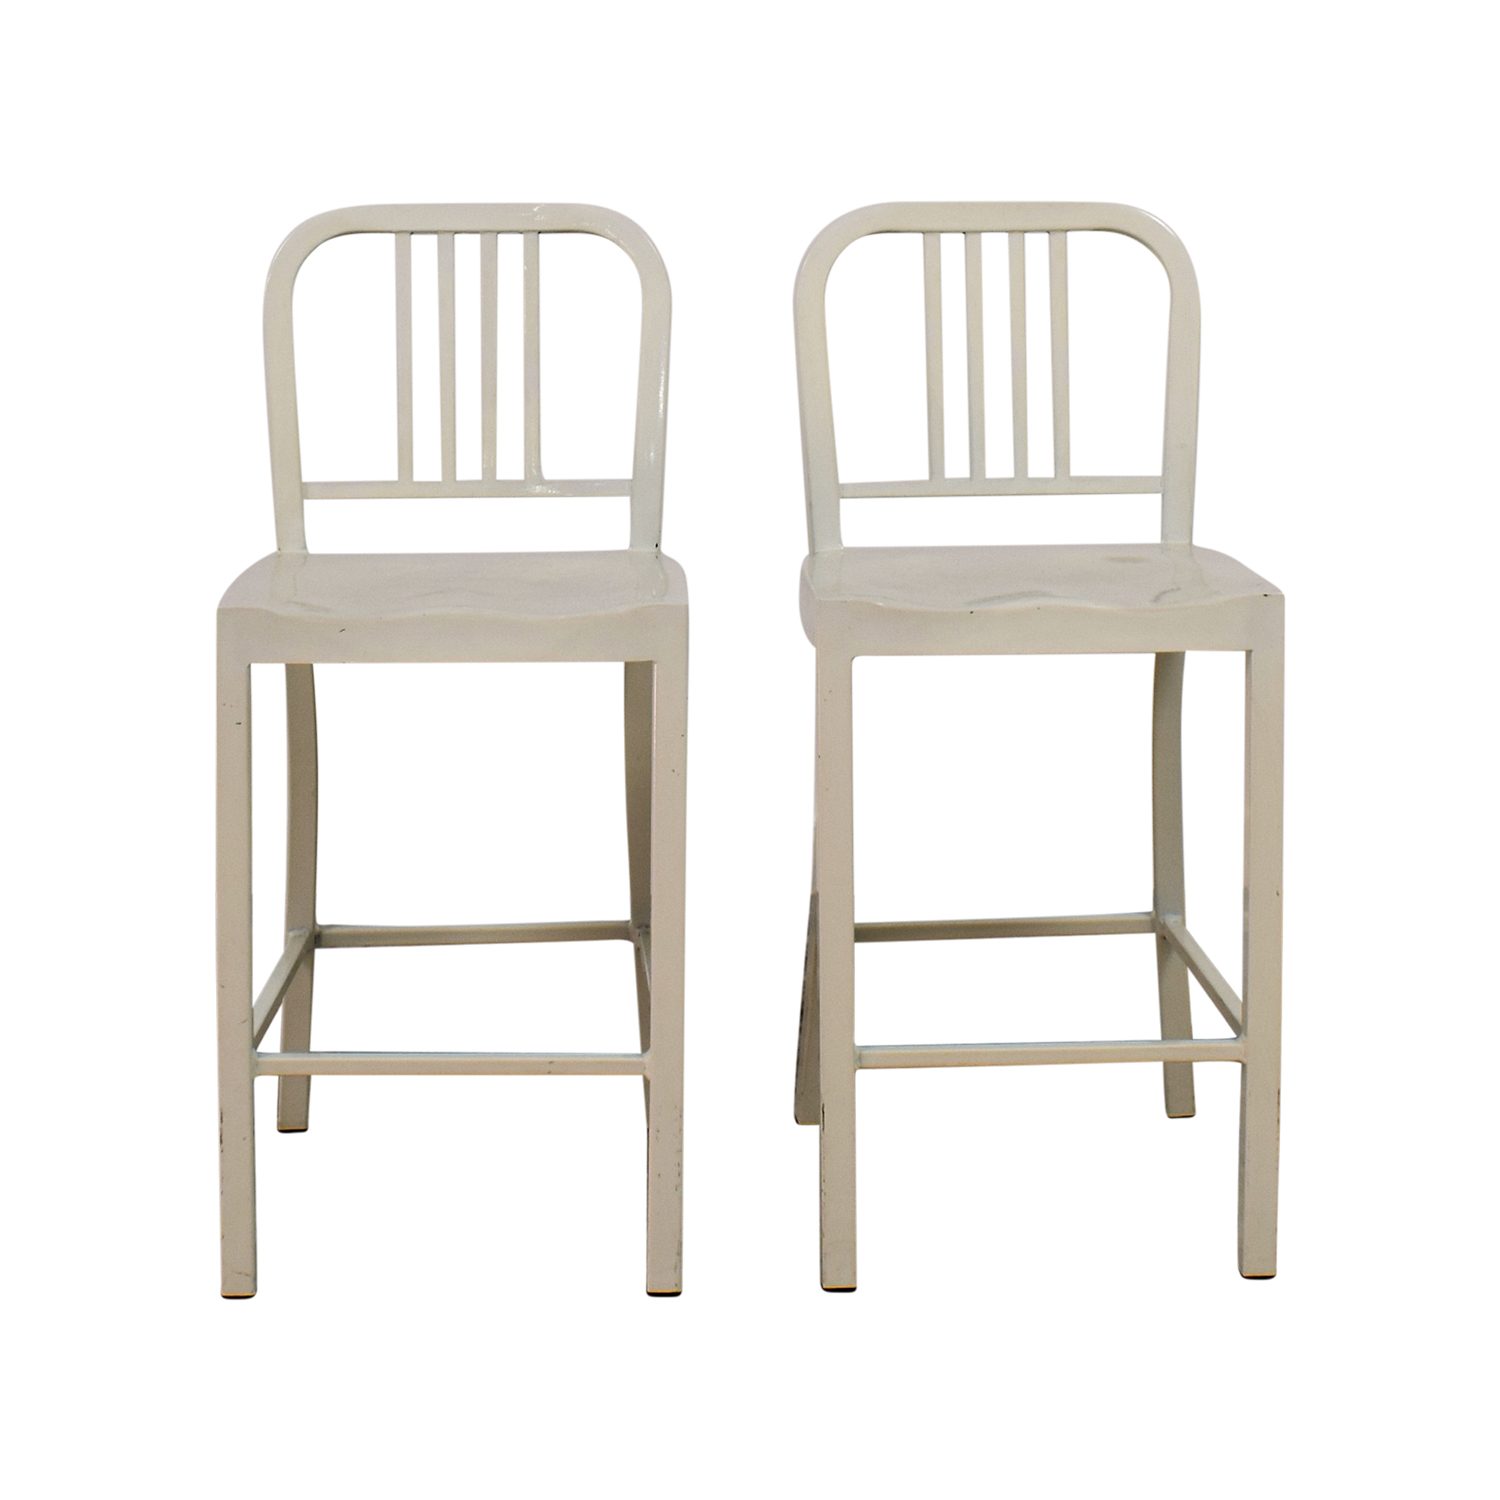 White Metal Chairs for sale